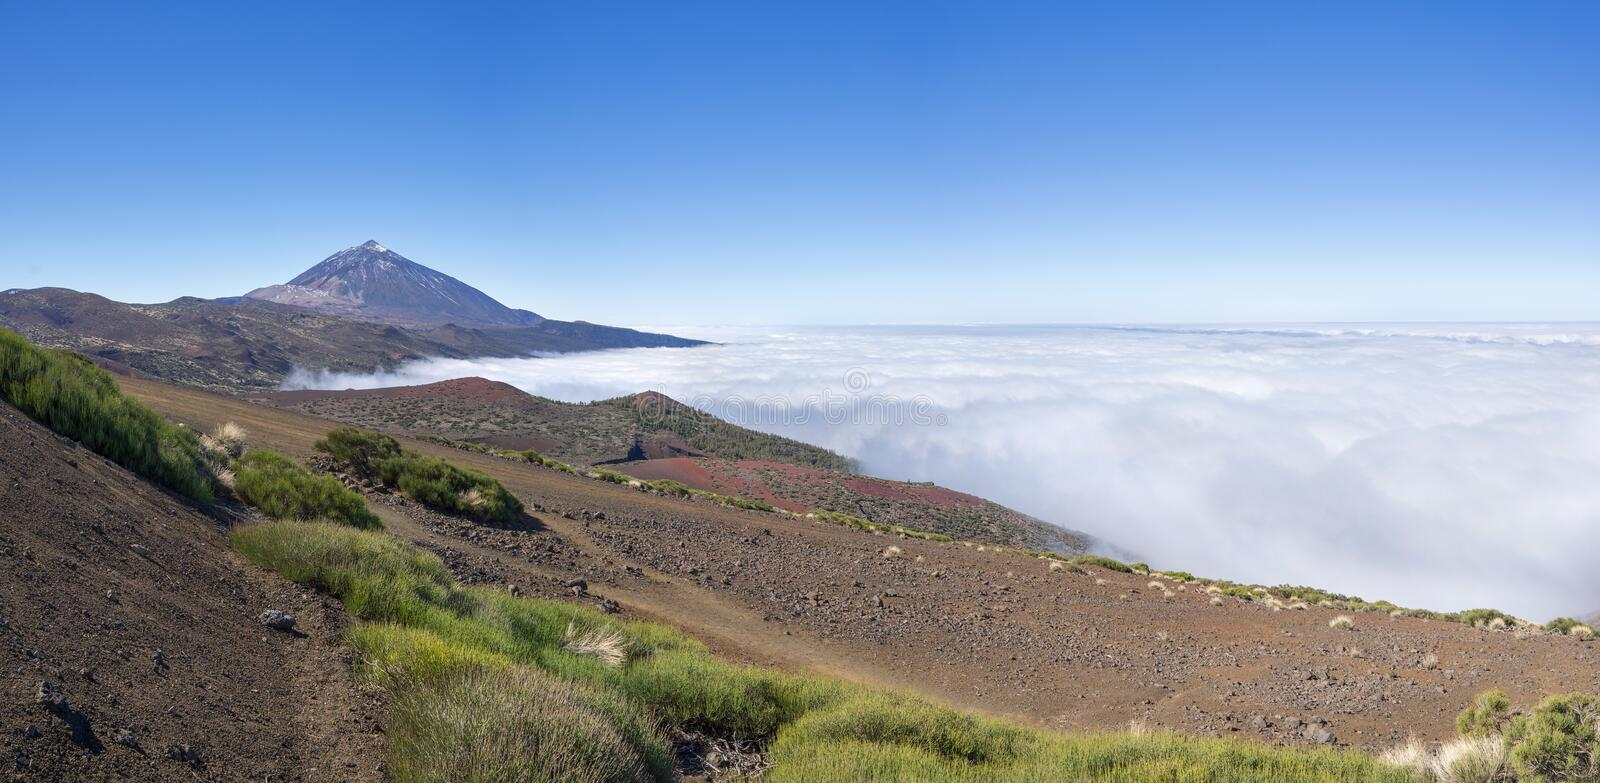 Tenerife - Teide above the sea of clouds in the national park. Tenerife, Canary Islands - Volcano Teide above the sea of clouds in the national park royalty free stock photography